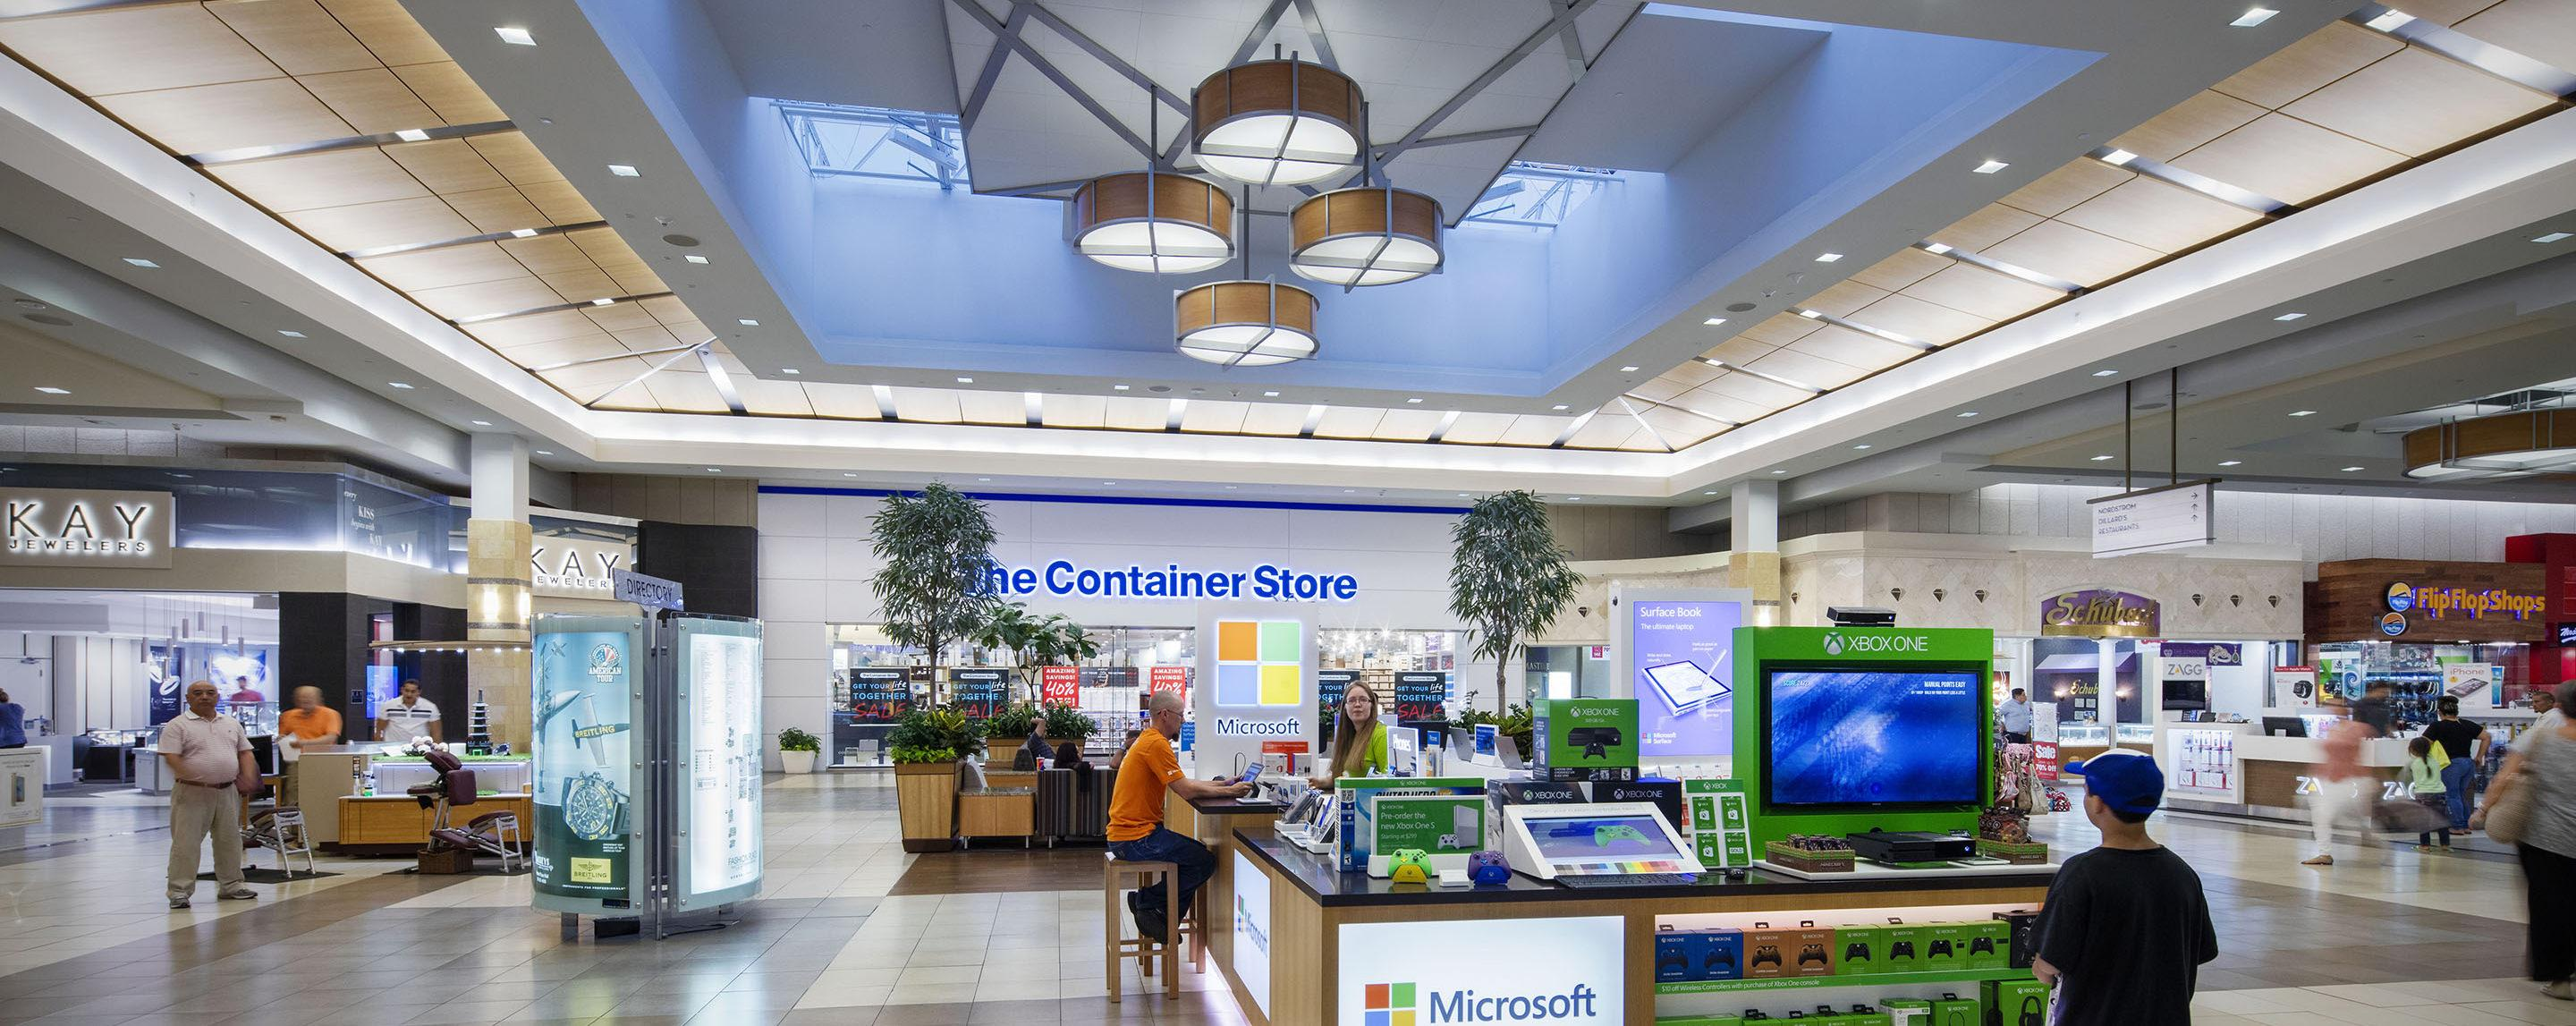 People shop in a mall near kiosks and stores such as Zagg, Breitling, and The Container Store.